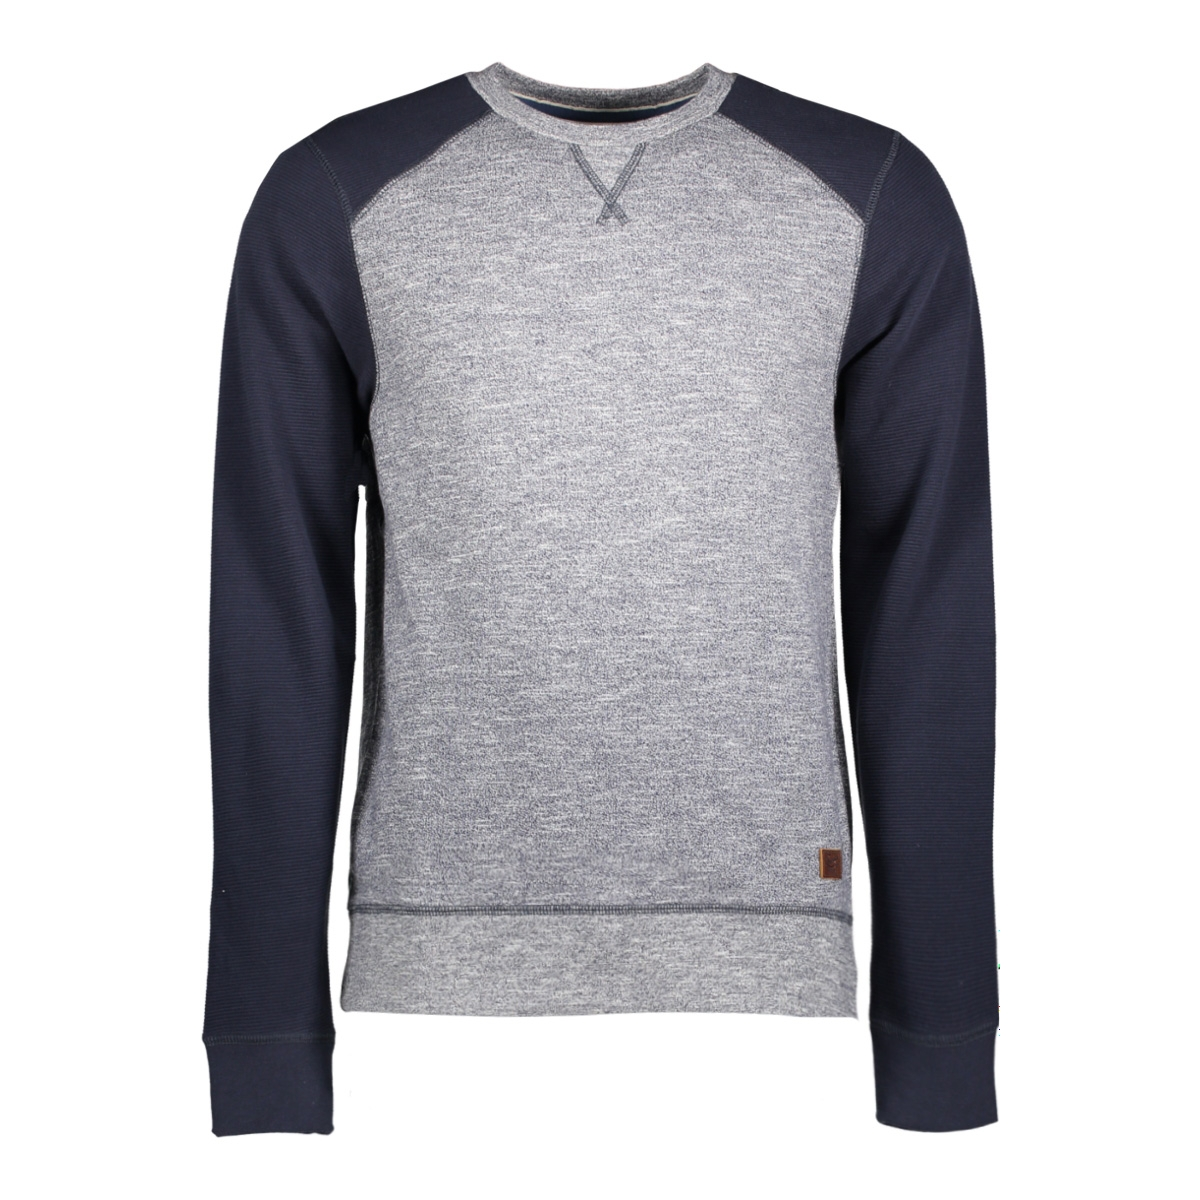 msw751418 twinlife sweater 6750